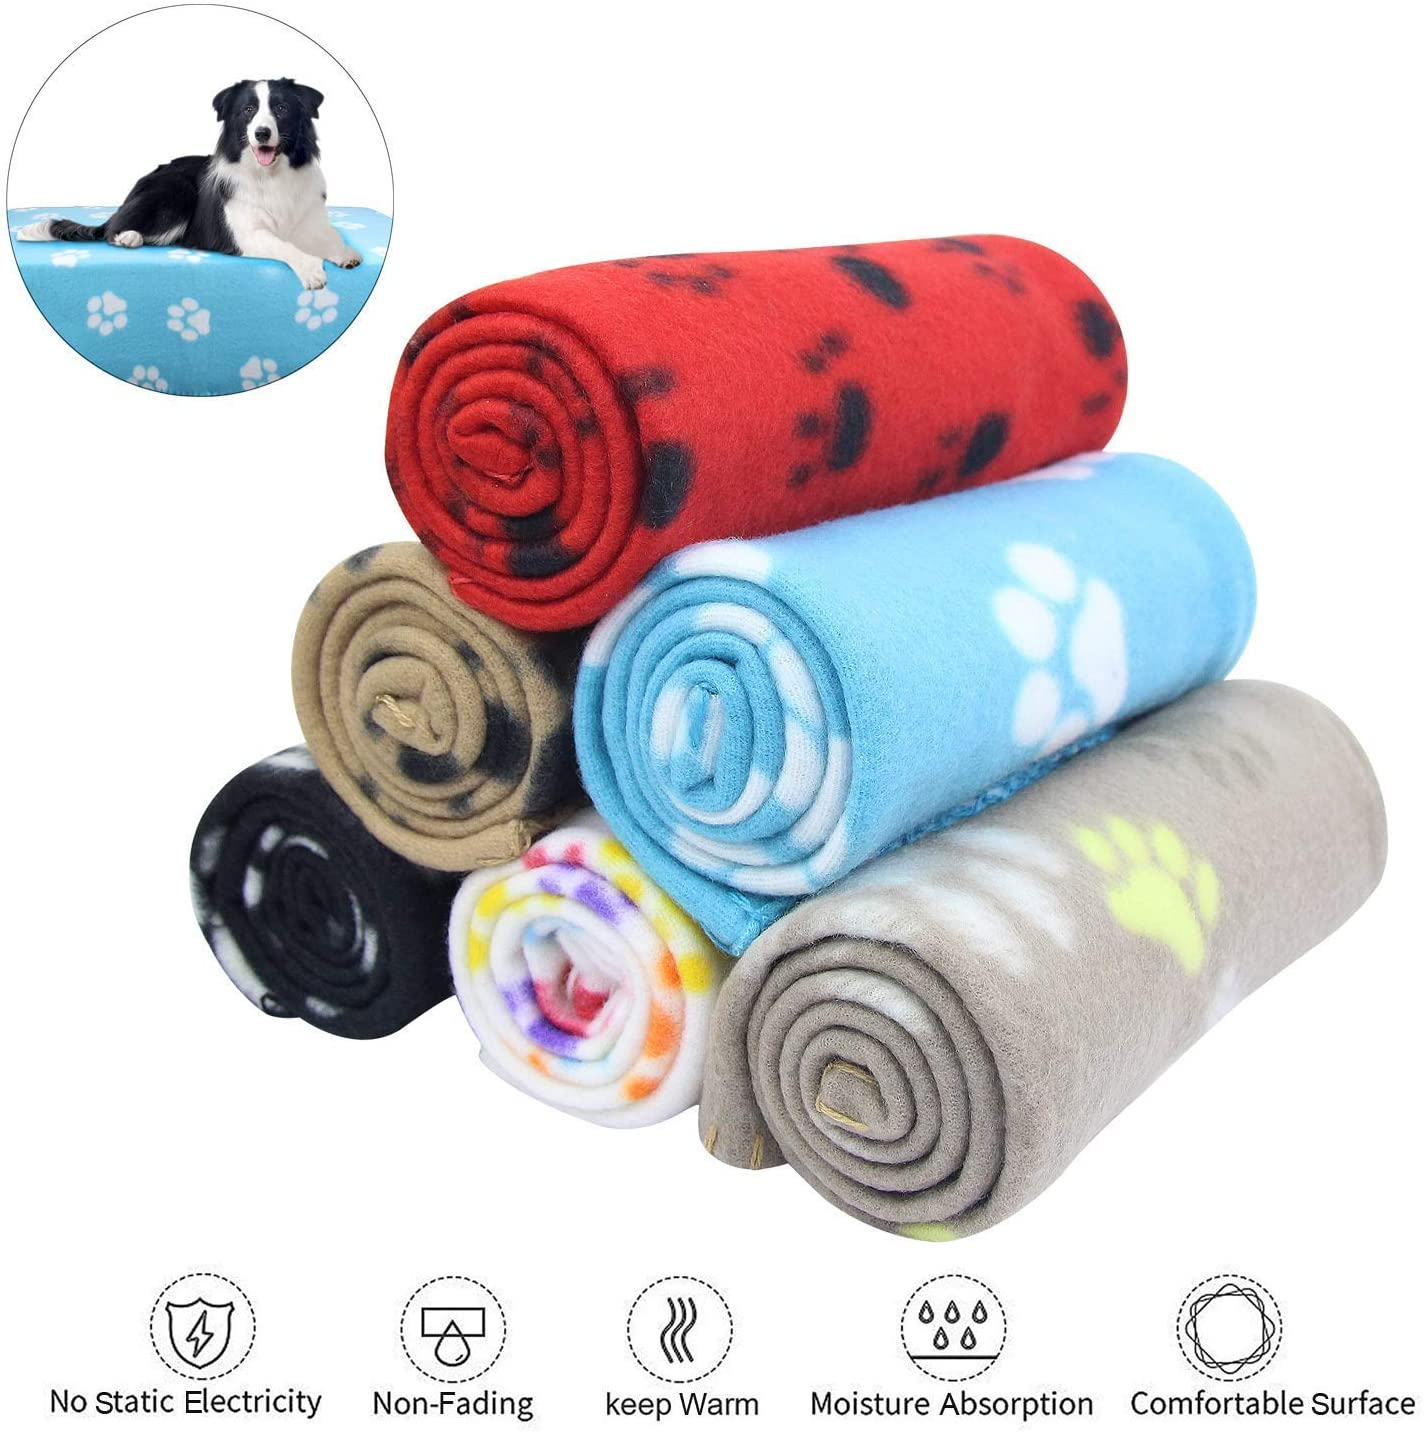 AK KYC 6 Pack Mixed Puppy Blanket Cushion Dog Cat Fleece Blankets Pet Sleep Mat Pad Bed Cover with Paw Print Kitten Soft Warm Blanket for Animals : Pet Supplies